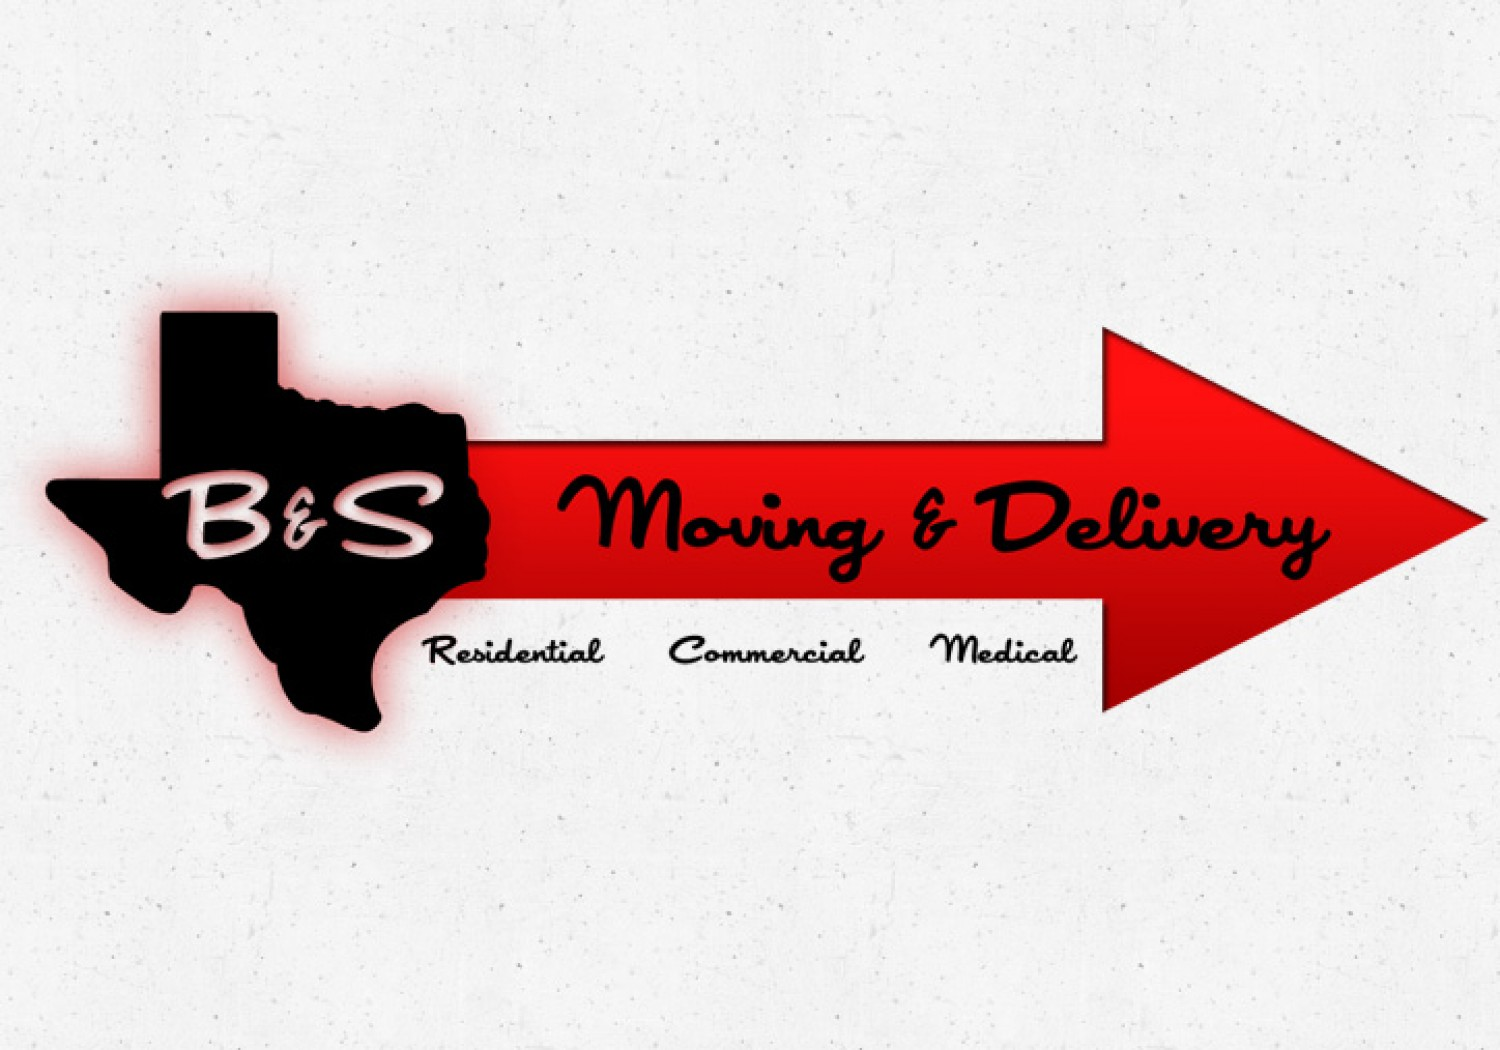 B & S Moving